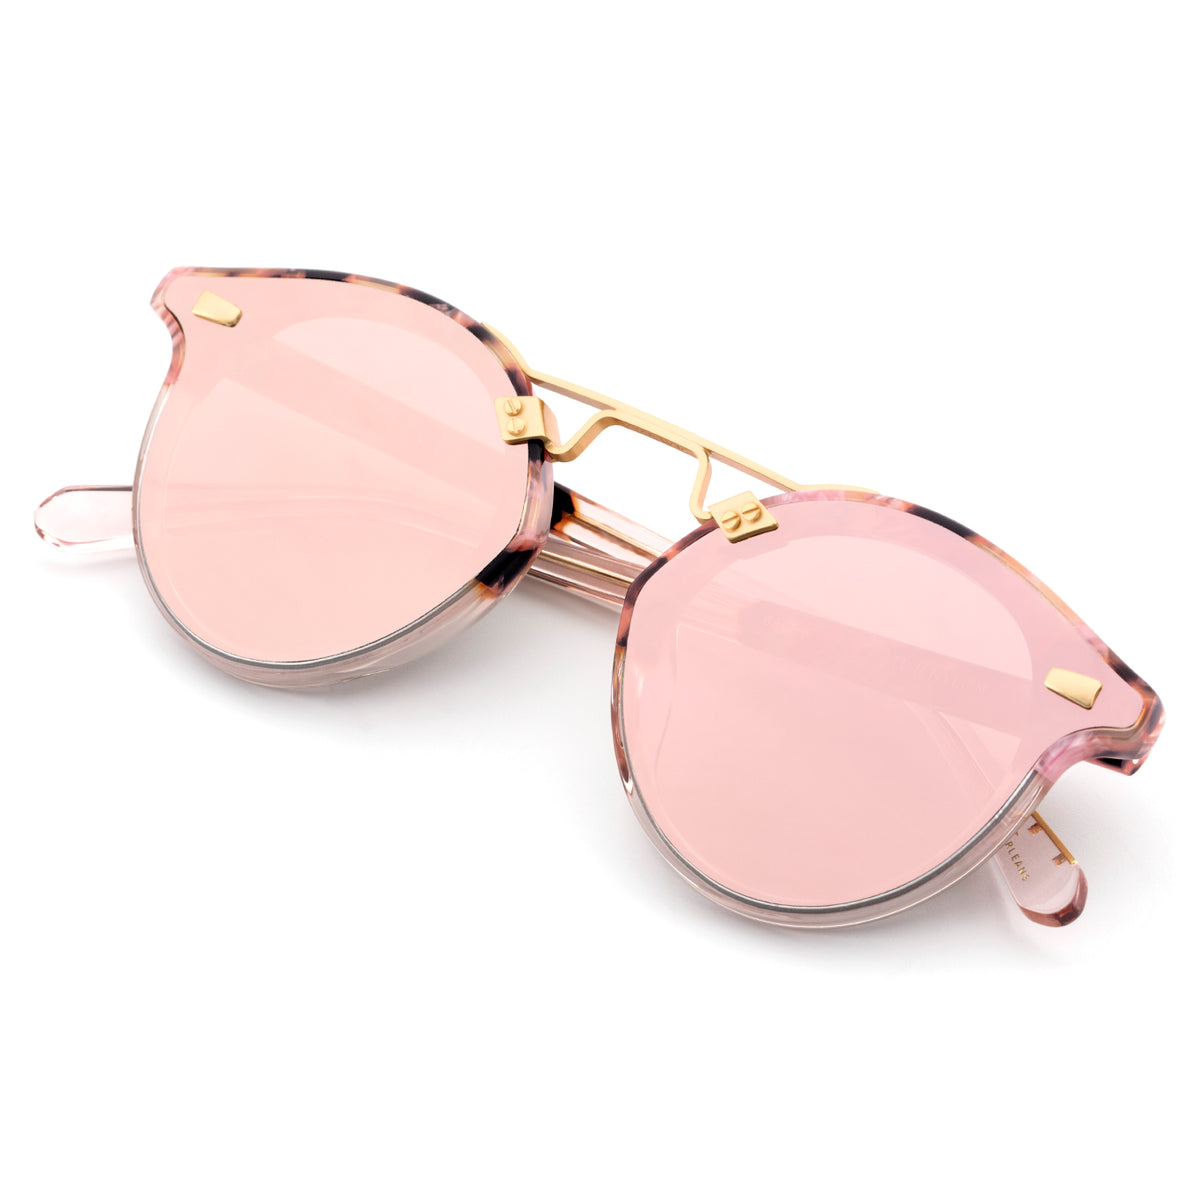 STL II NYLON | Pink Havana to Rose 24K